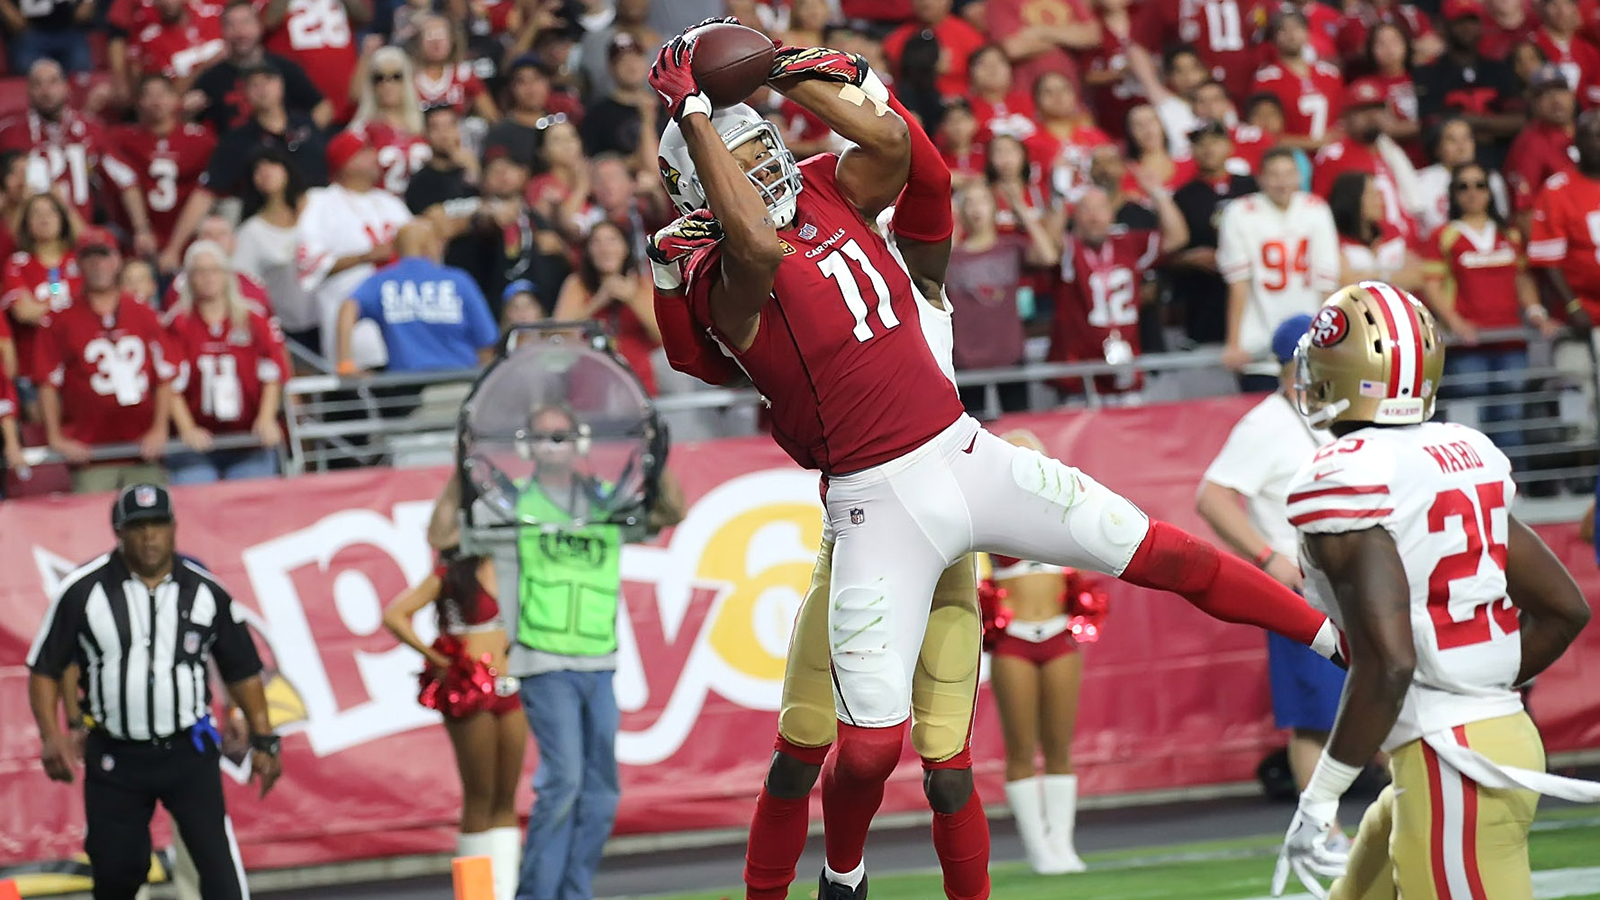 Cardinals survive winless 49ers on Fitzgerald's OT TD catch